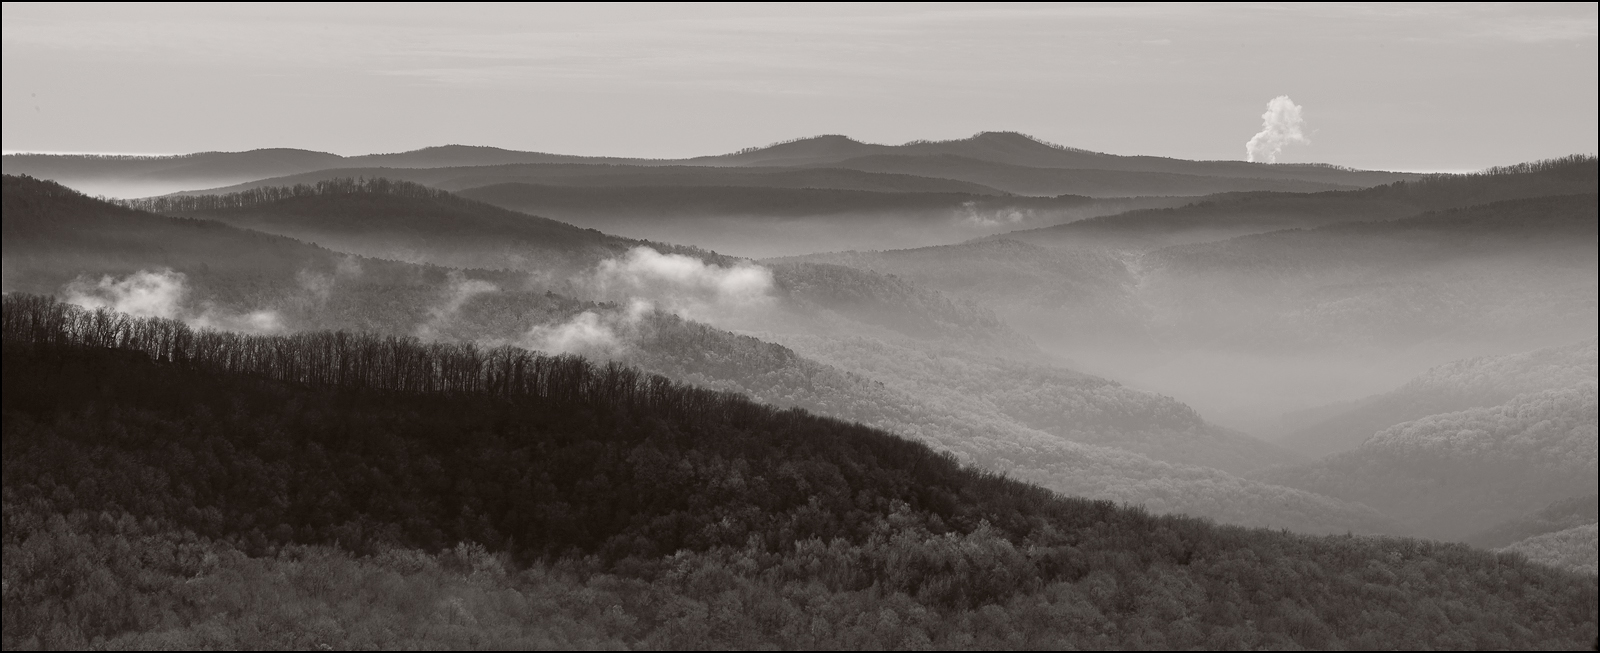 Ozark Mountains, home valley, black and white, winter, morning, highway 16, photo